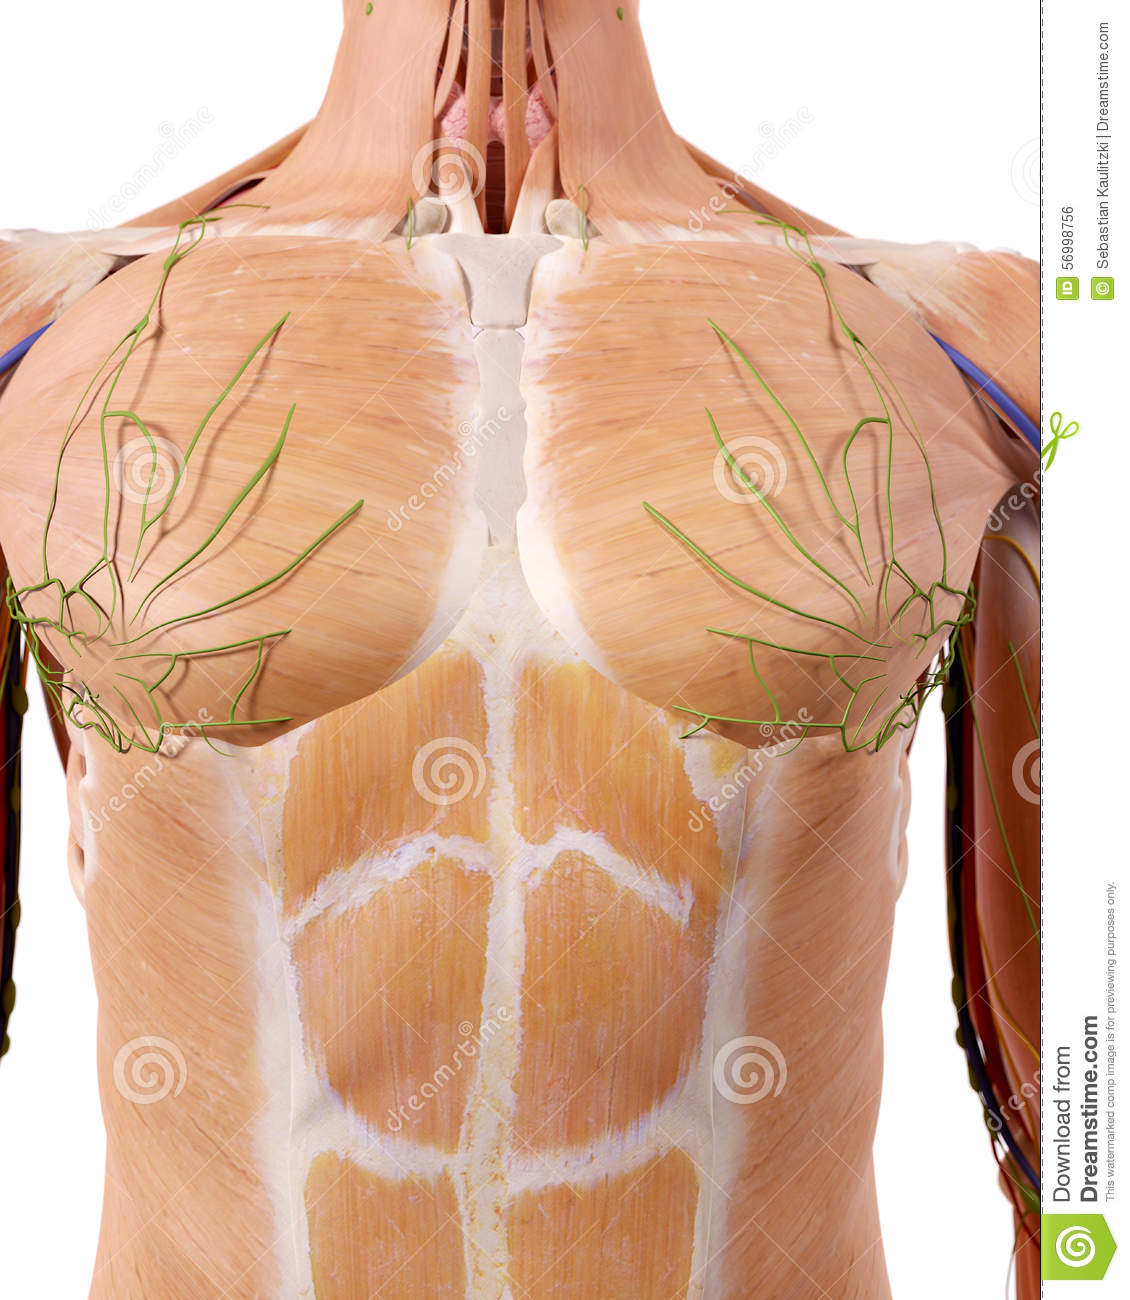 The Upper Body Anatomy Stock Illustration Illustration Of Nerves